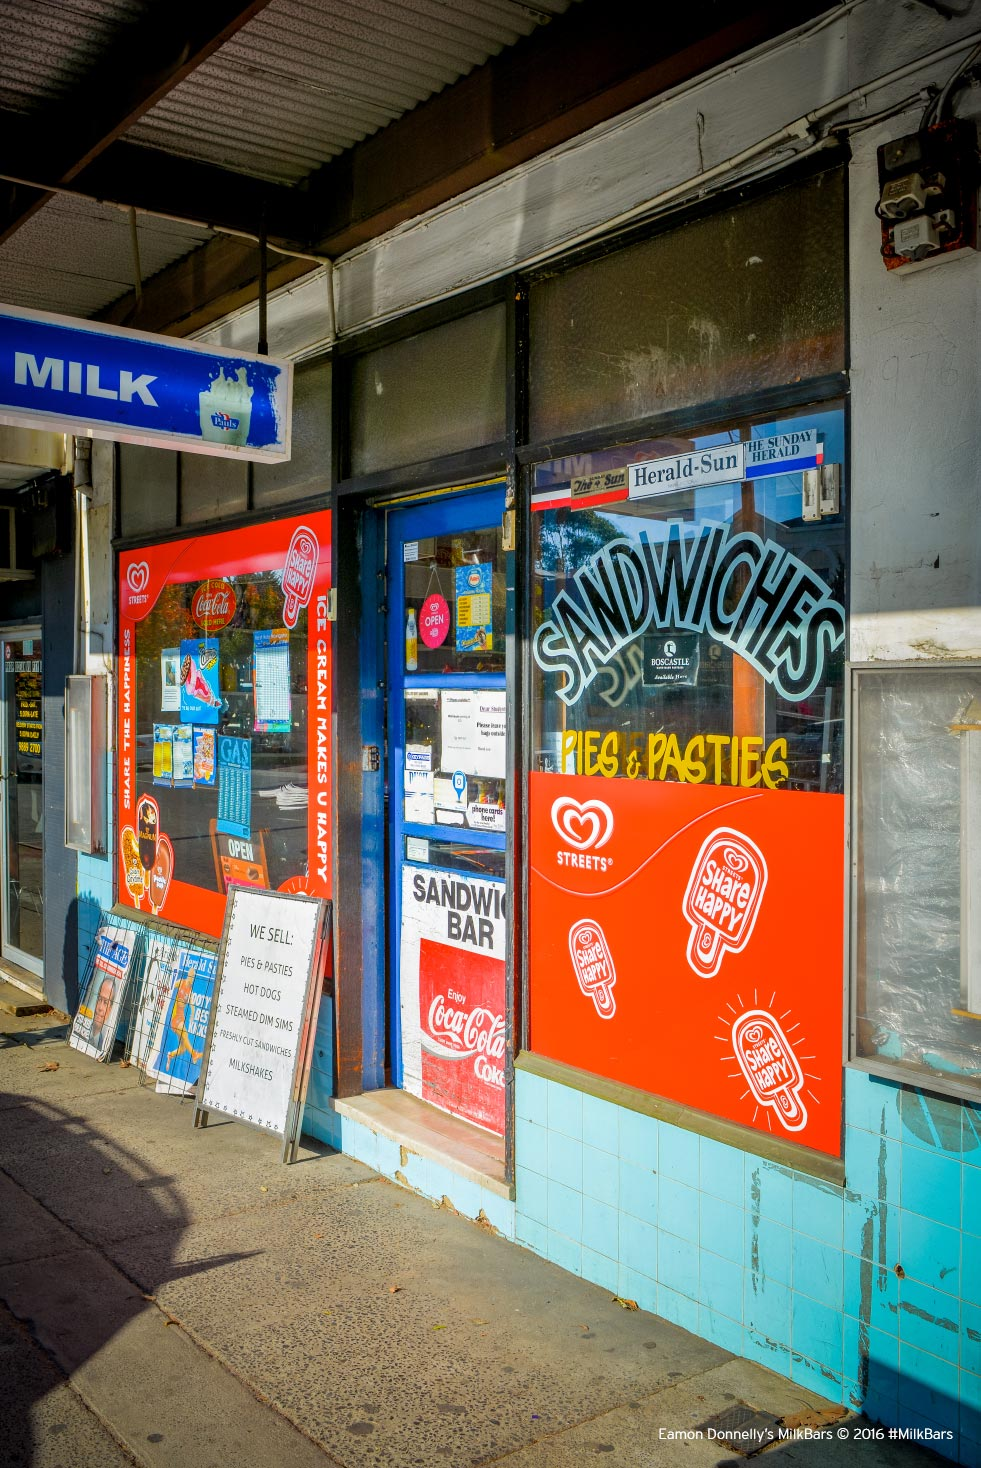 Camberwell-Milk-Bar-Eamon-Donnelly's-Milk-Bars-Book-Project-(c)-2001-2016.jpg